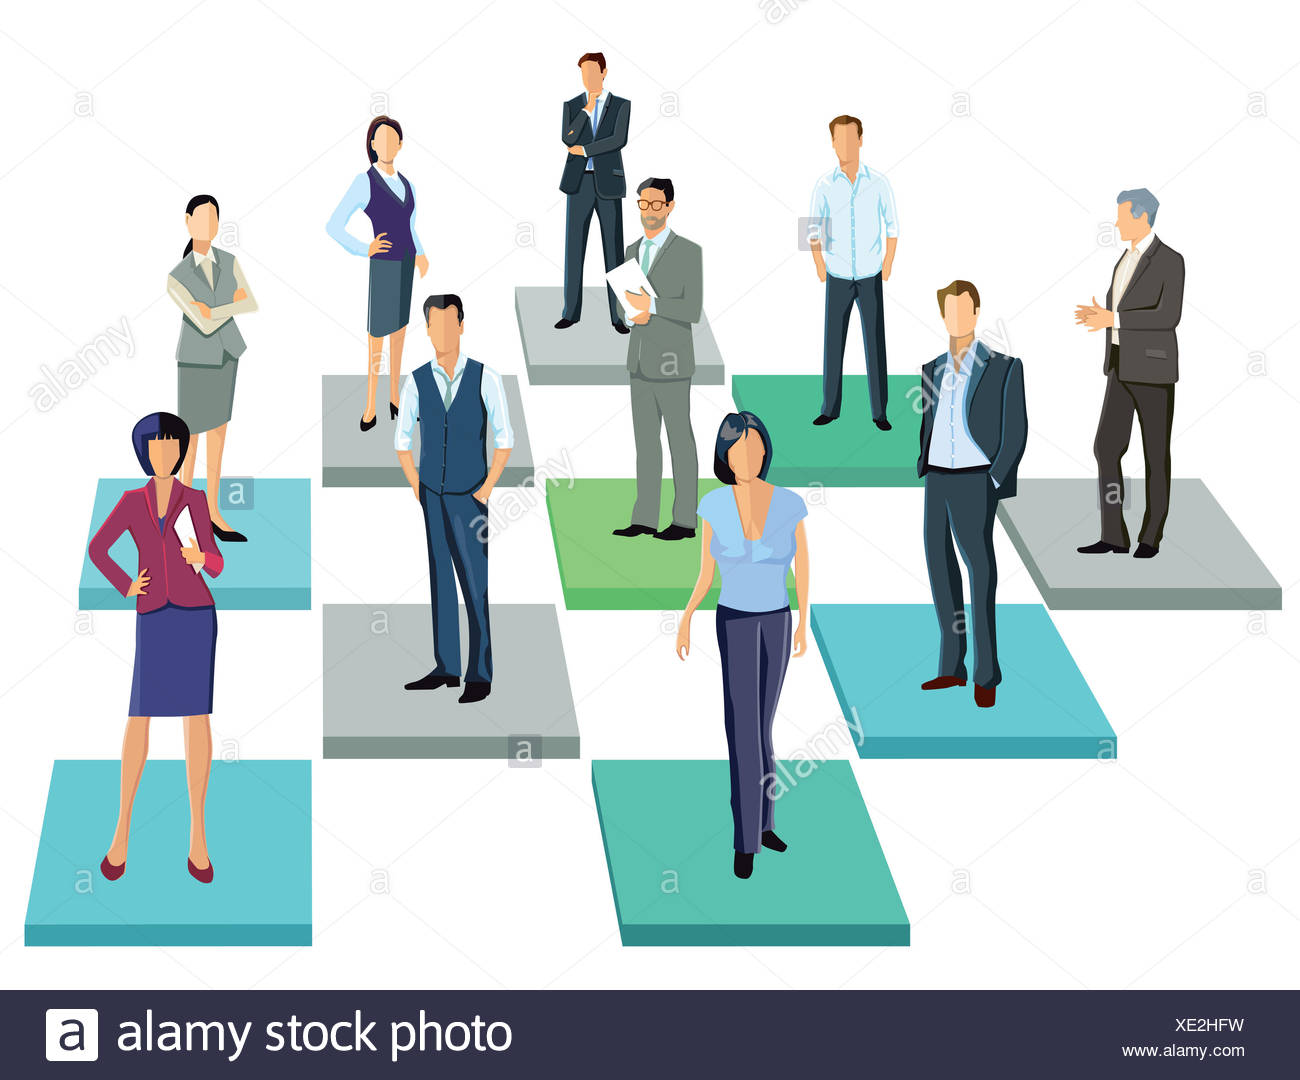 Together, Business contacts - Stock Image